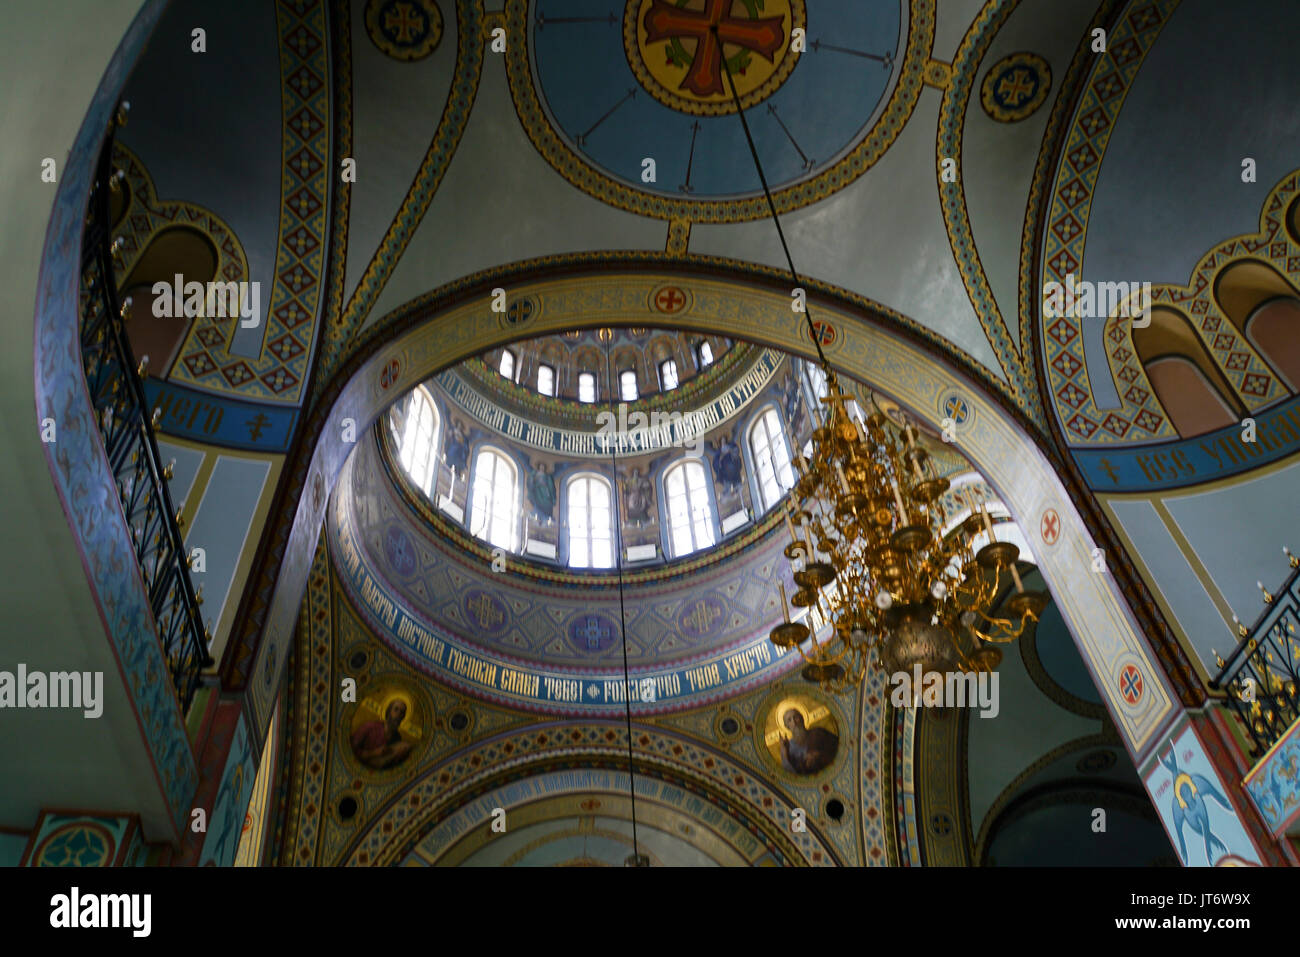 Latvian Orthodox Church, Riga, Latvia - Stock Image